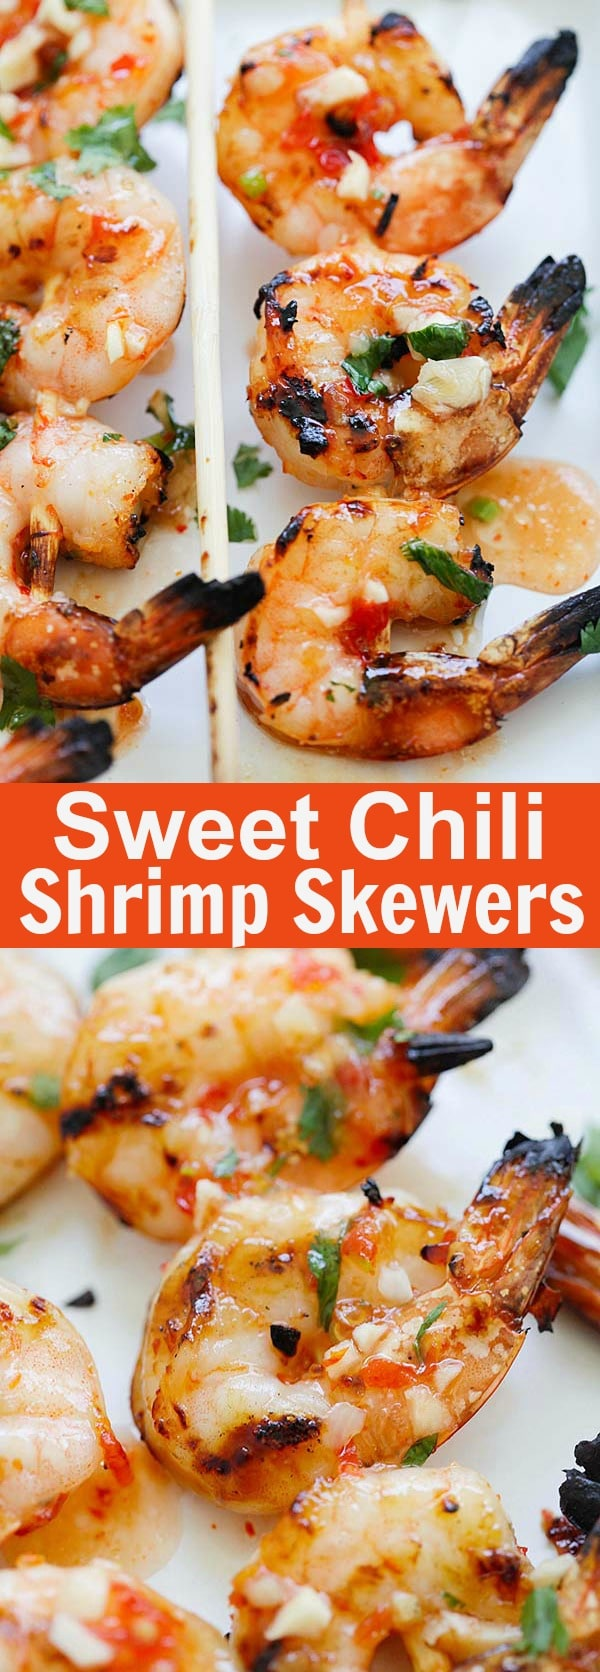 Sweet Chili Shrimp Skewers - perfectly grilled shrimp on sticks, marinated with Thai sweet chili sauce. These shrimp skewers are so easy to make and so delicious | rasamalaysia.com